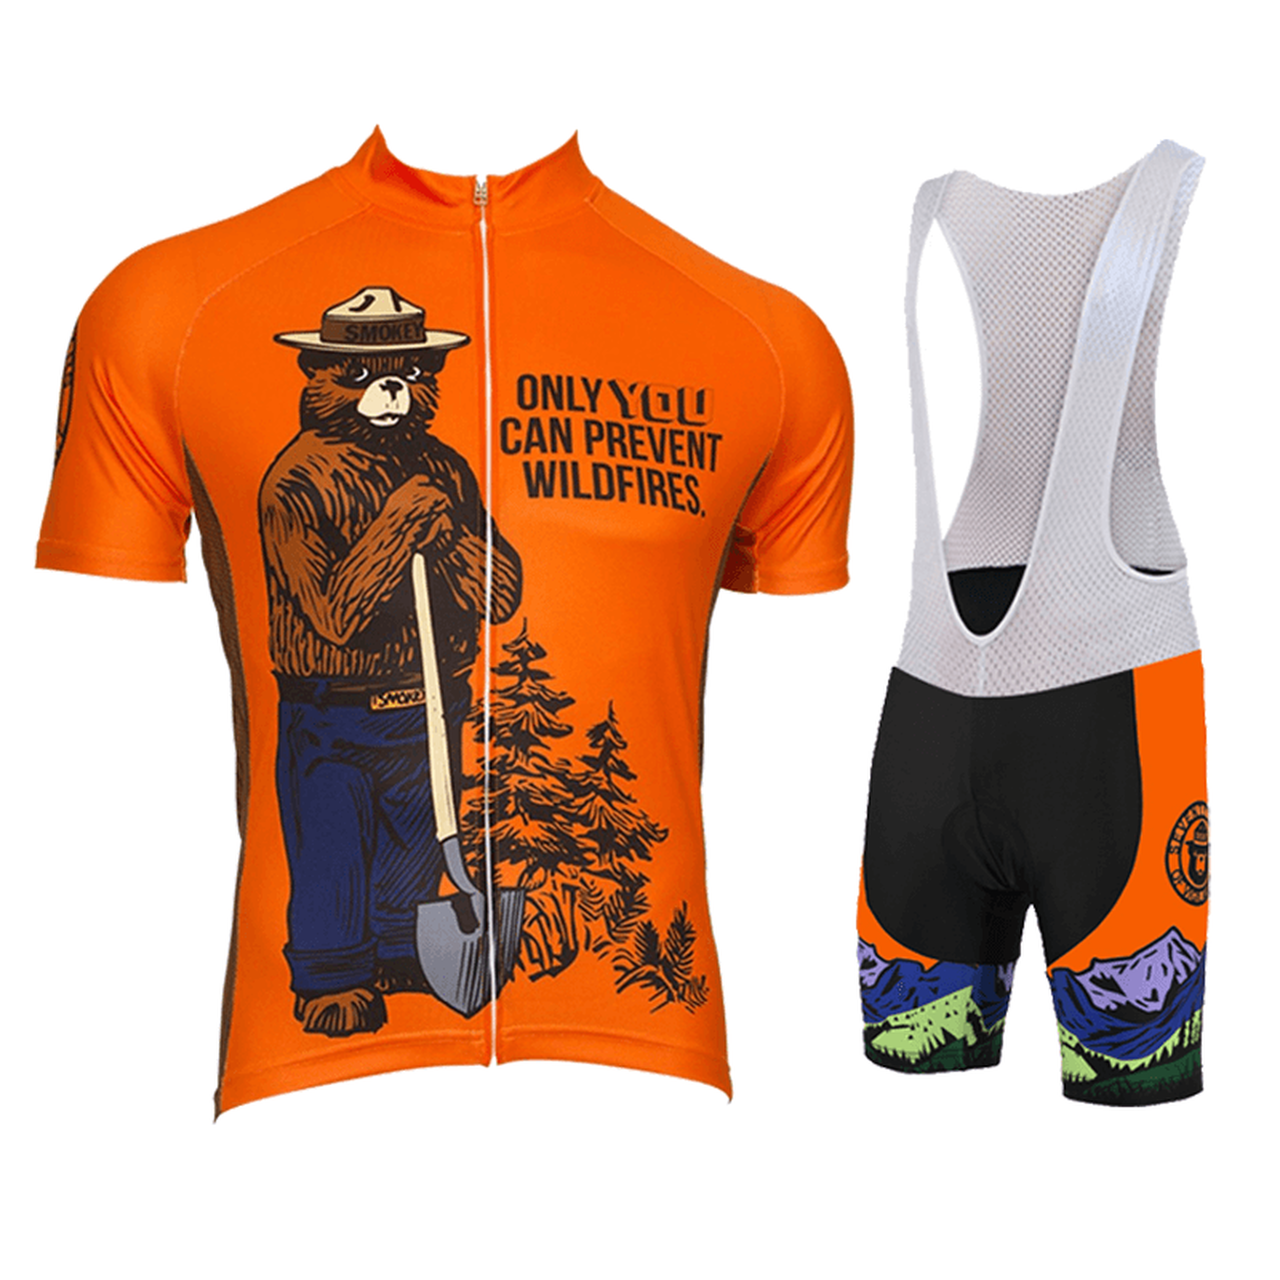 Retro Smokey Bear Prevent Wildfires Cycling Kit